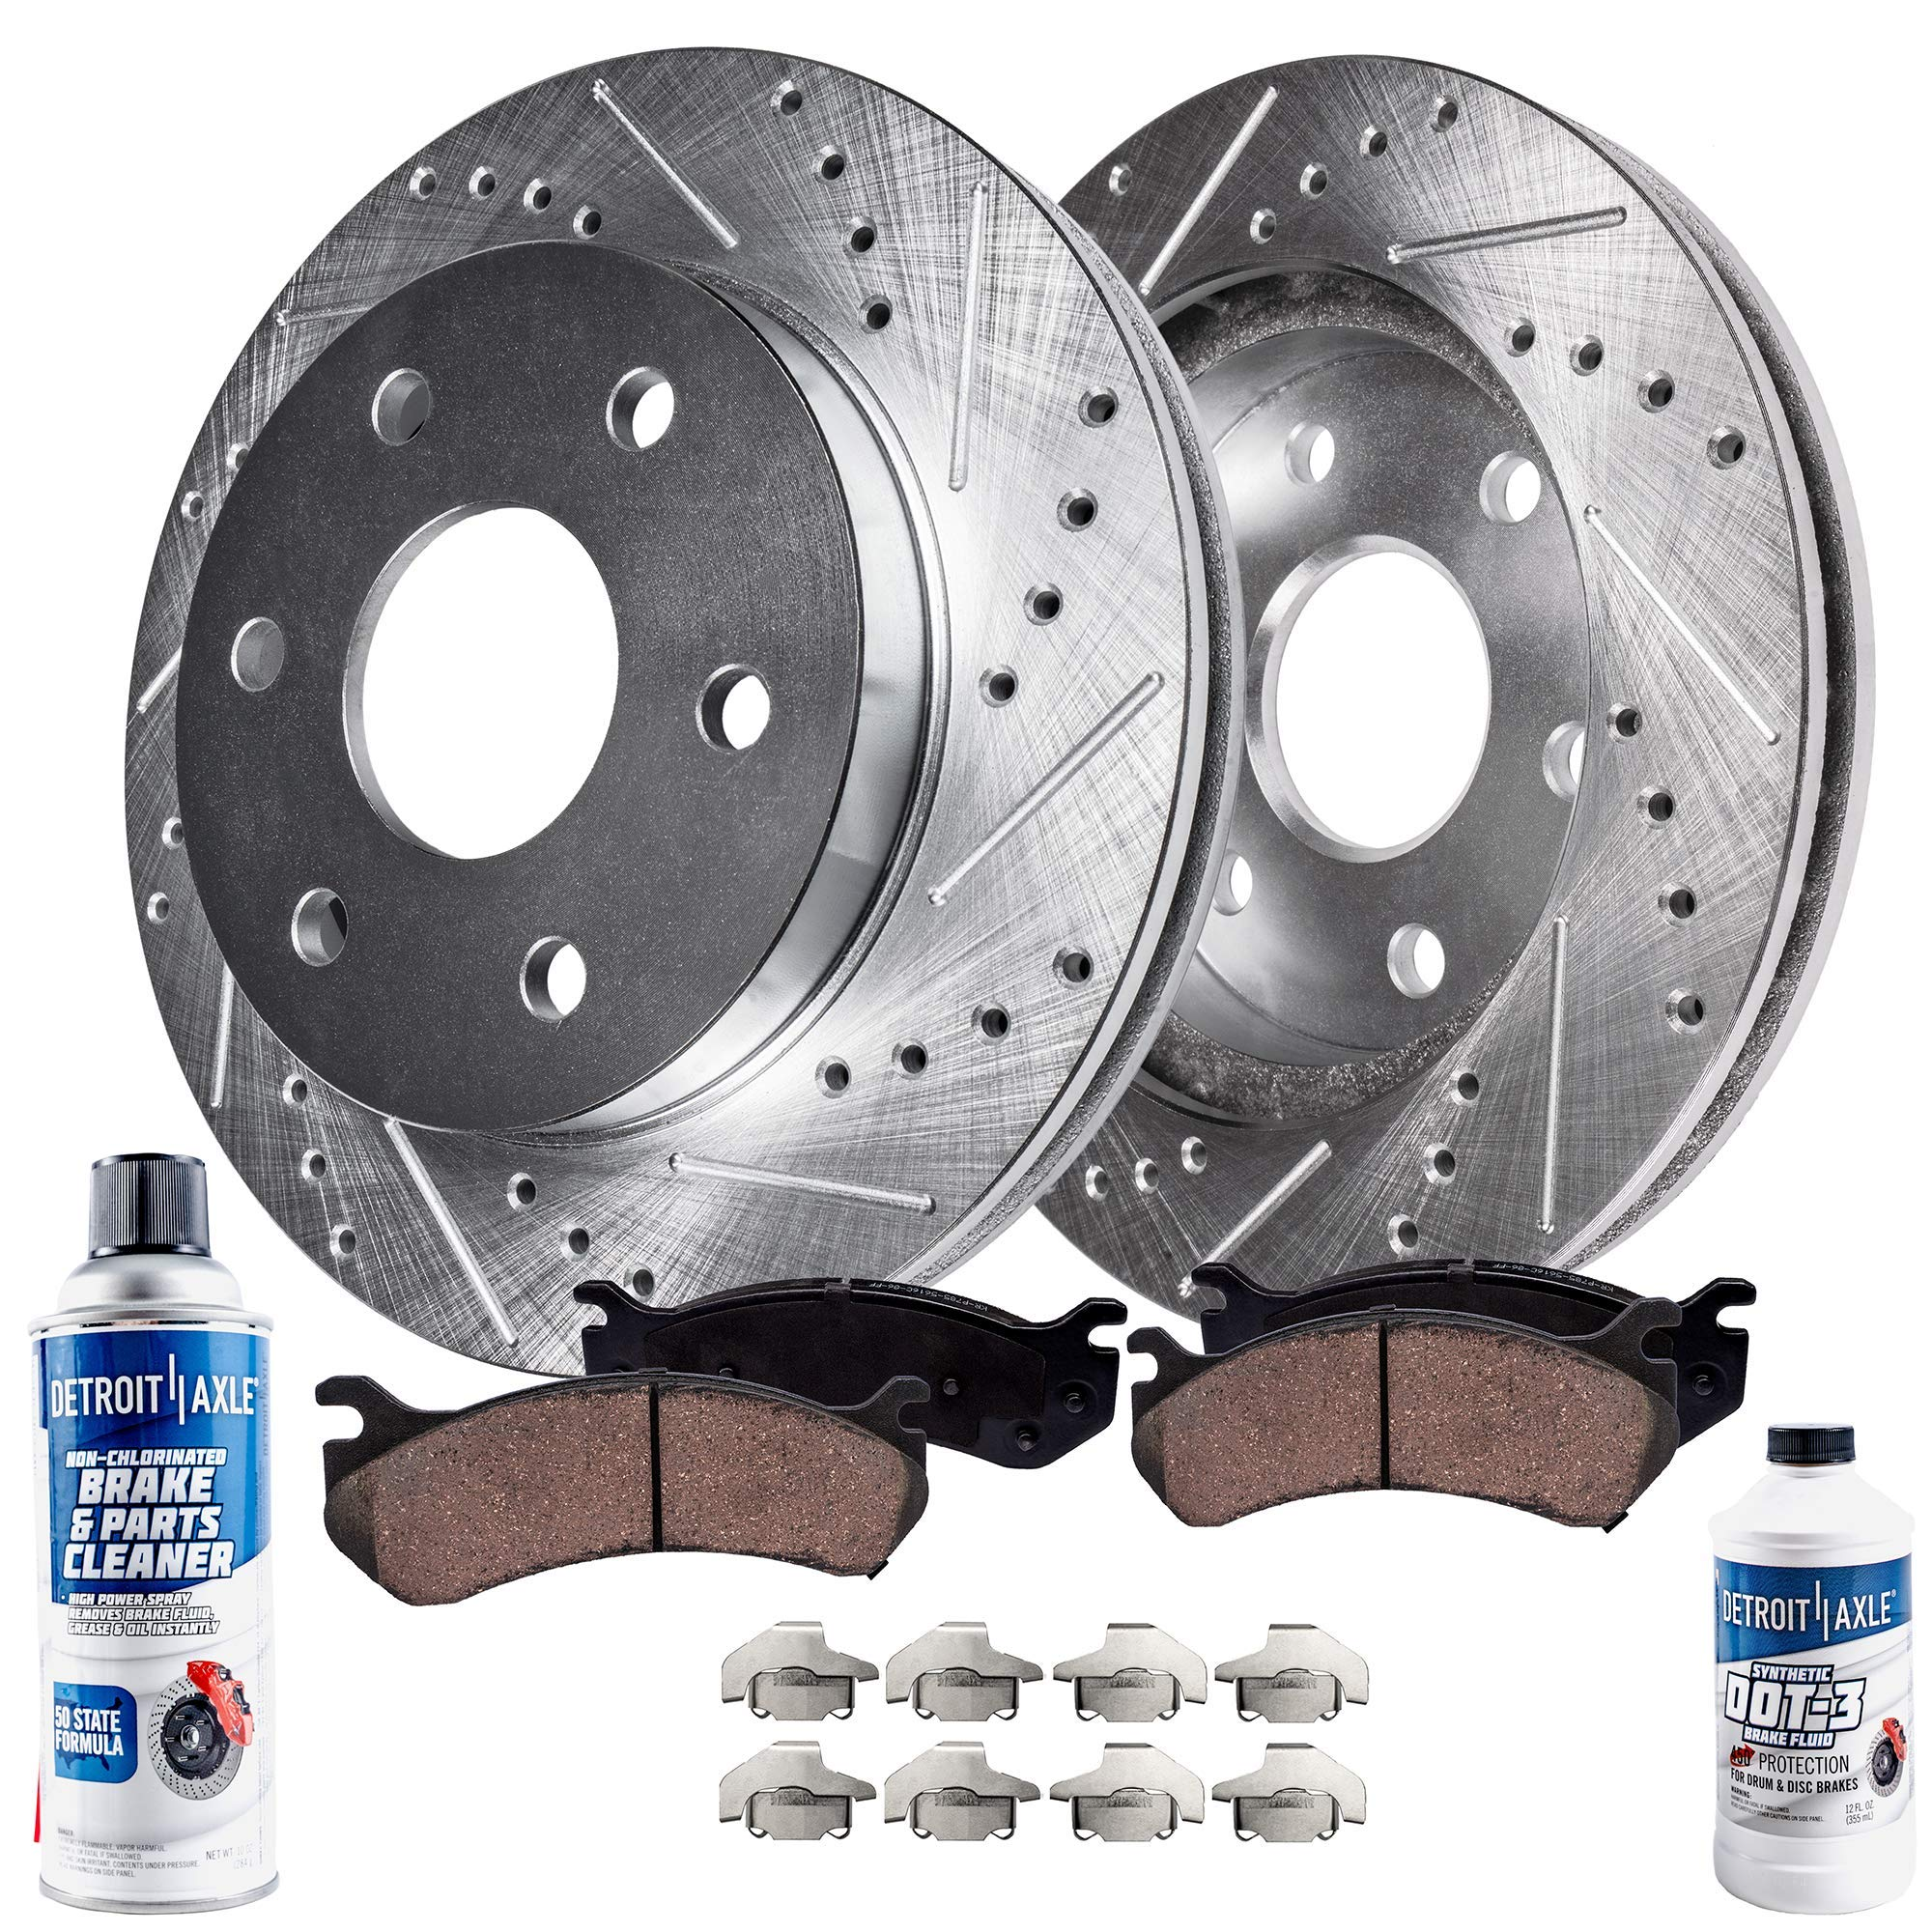 Amazon Com Detroit Axle Front Drilled Slotted Rotors Ceramic Brake Pads W Brake Fluid Replacement For Buick Enclave Chevy Traverse Gmc Acadia Saturn Outlook 6pc Set Automotive